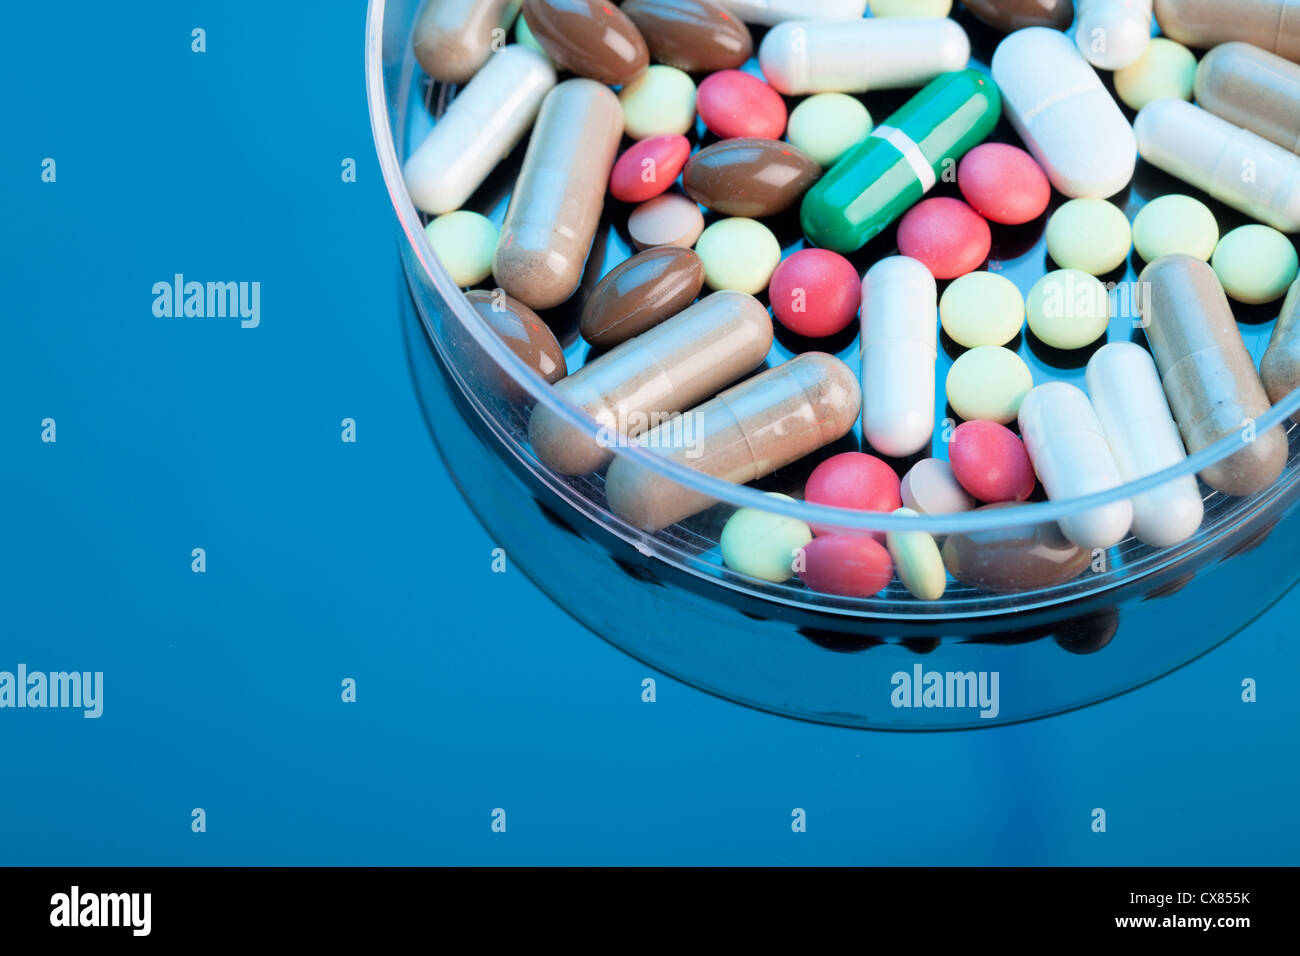 Overdose of vitamin products - Stock Image